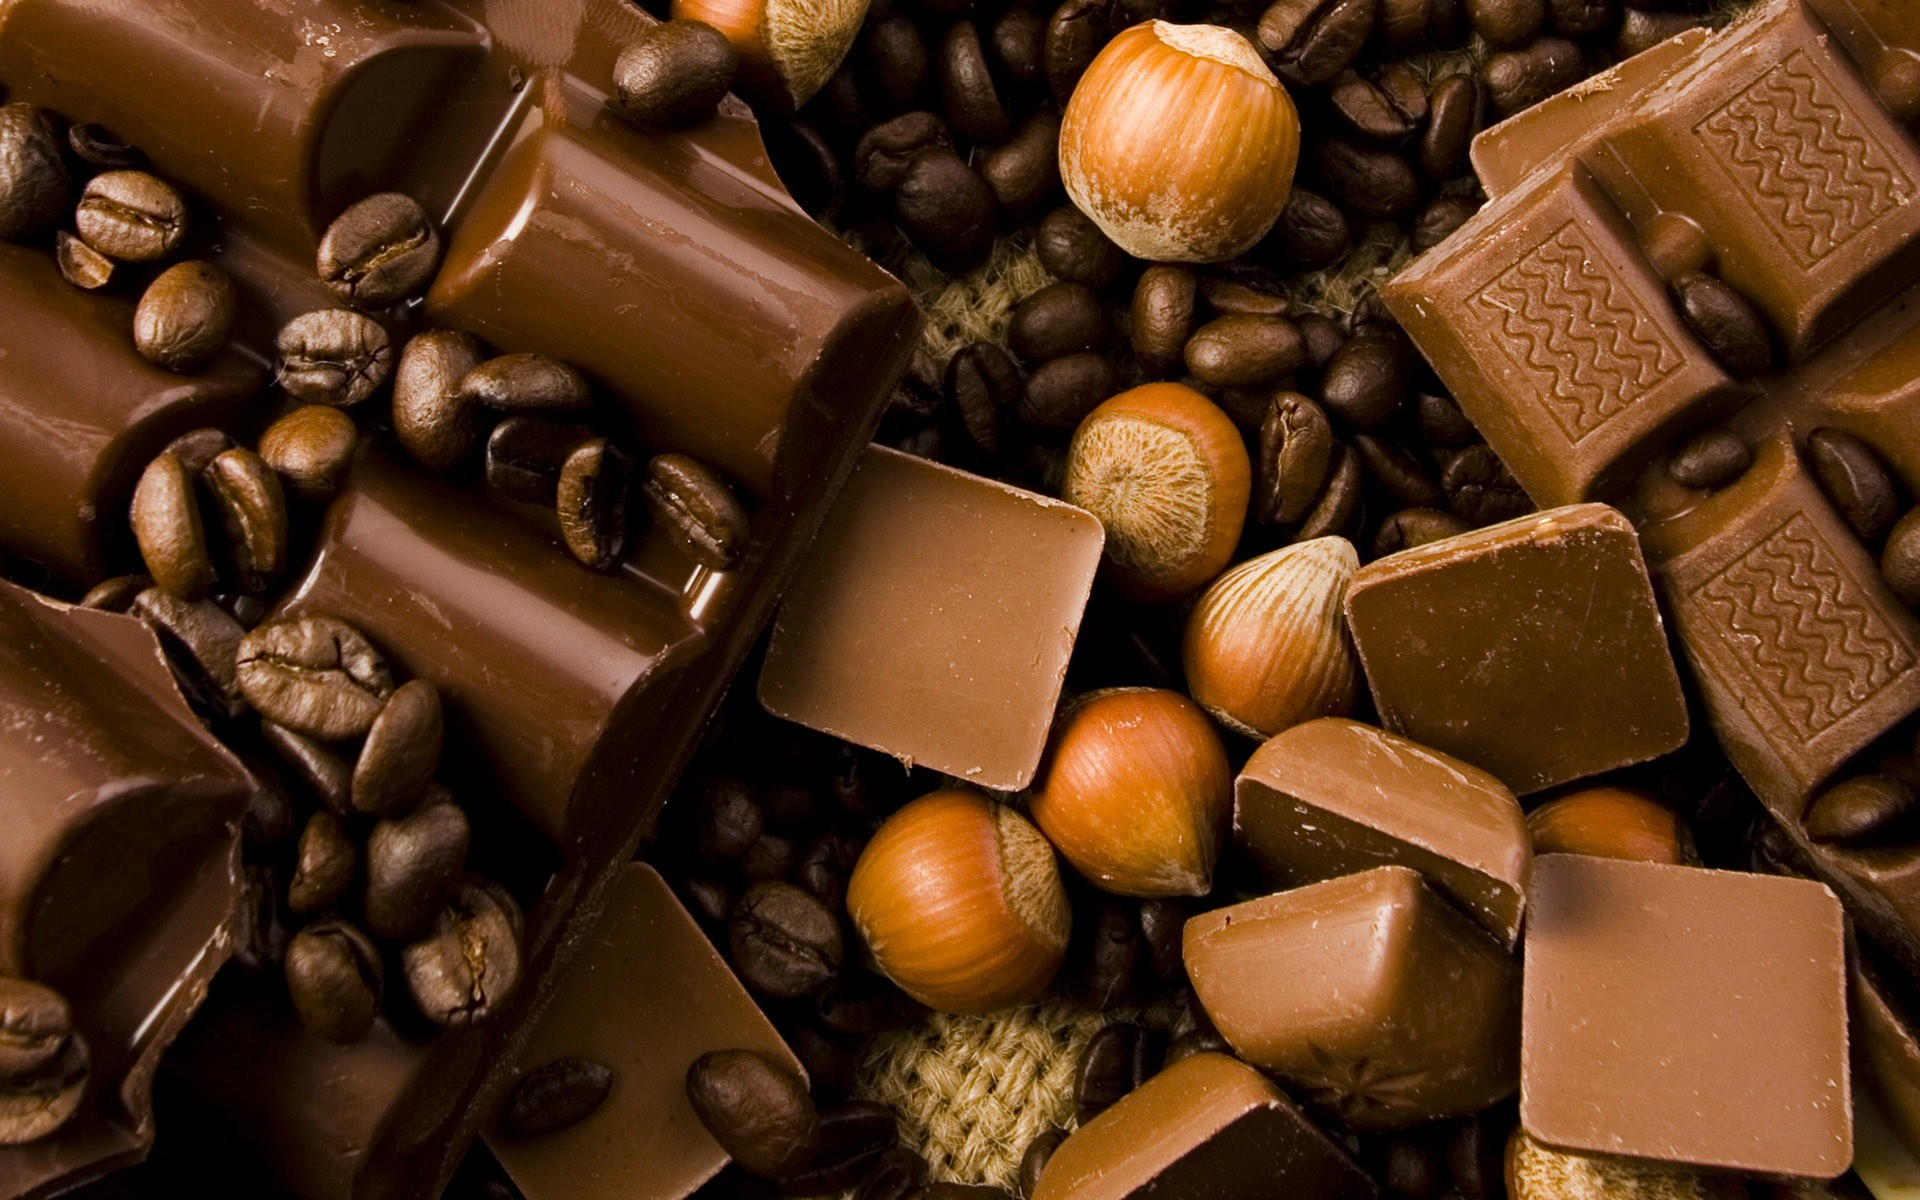 1920x1200 Chocolate Background Wallpaper 12552